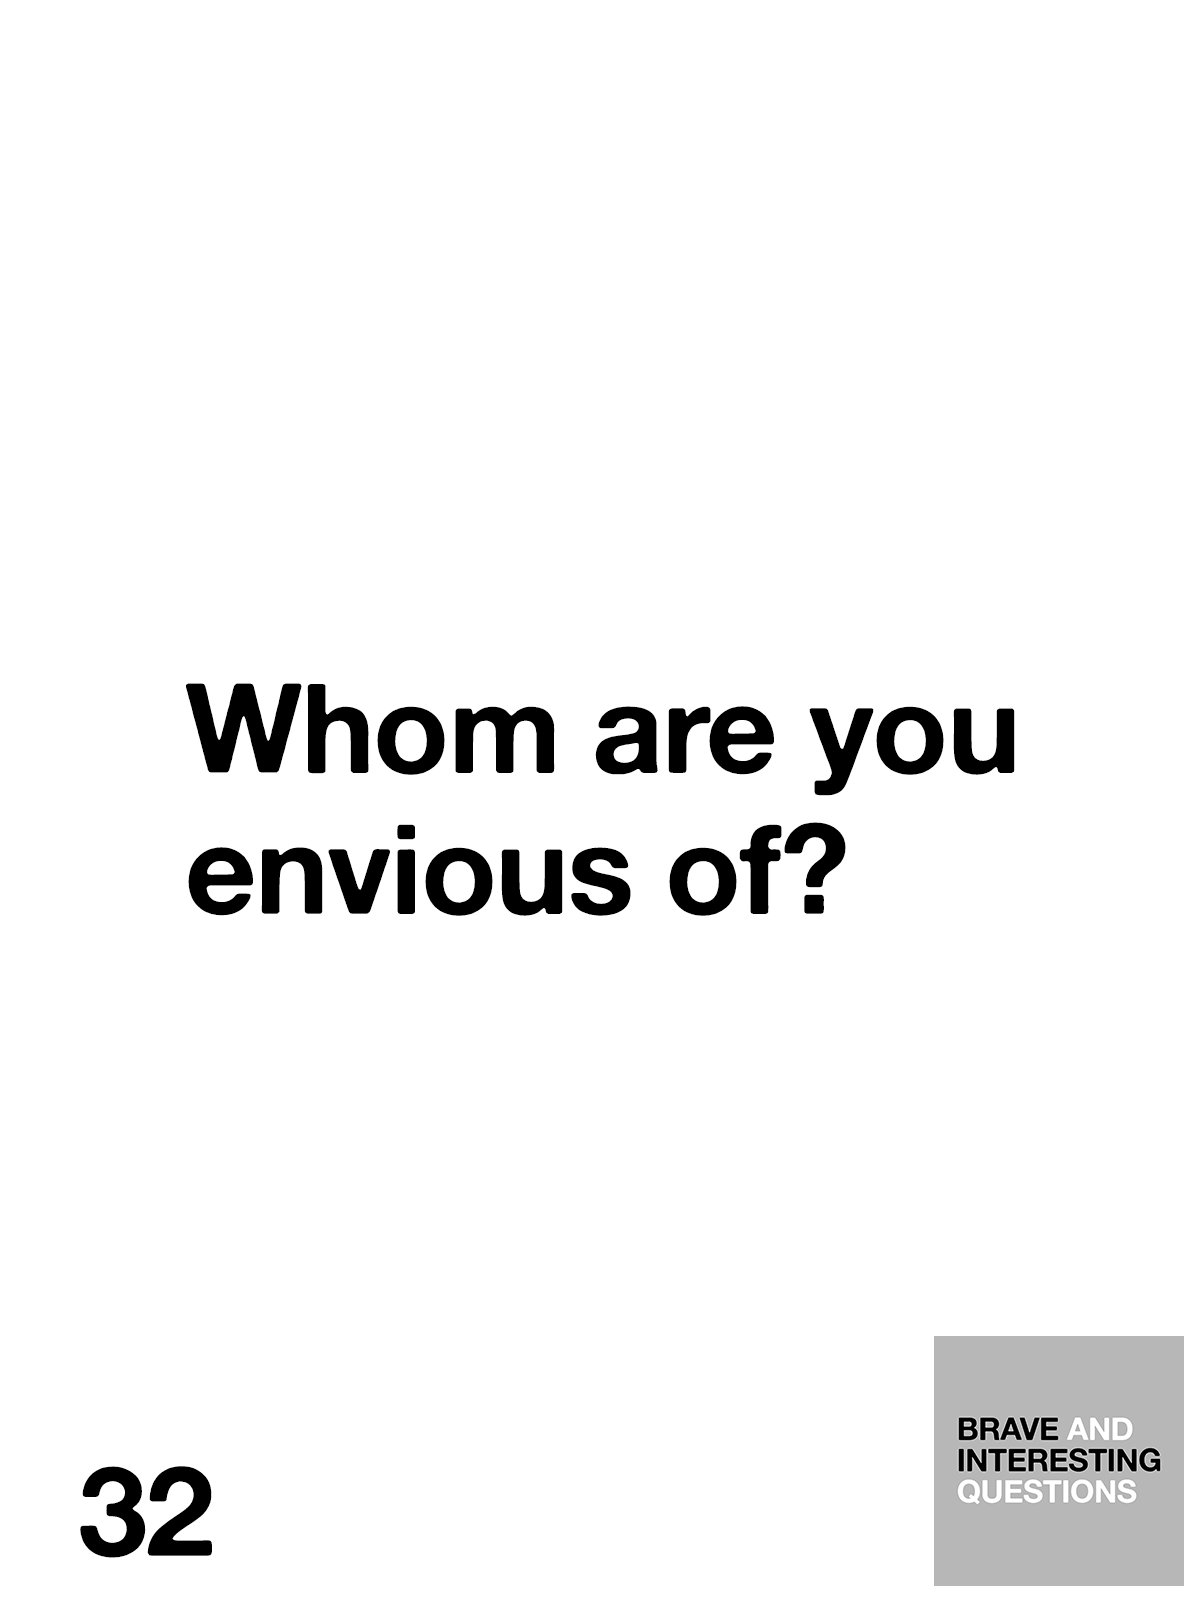 What's your answer?  #BraveAndInterestingQuestions https://t.co/hZnXZwkjXn